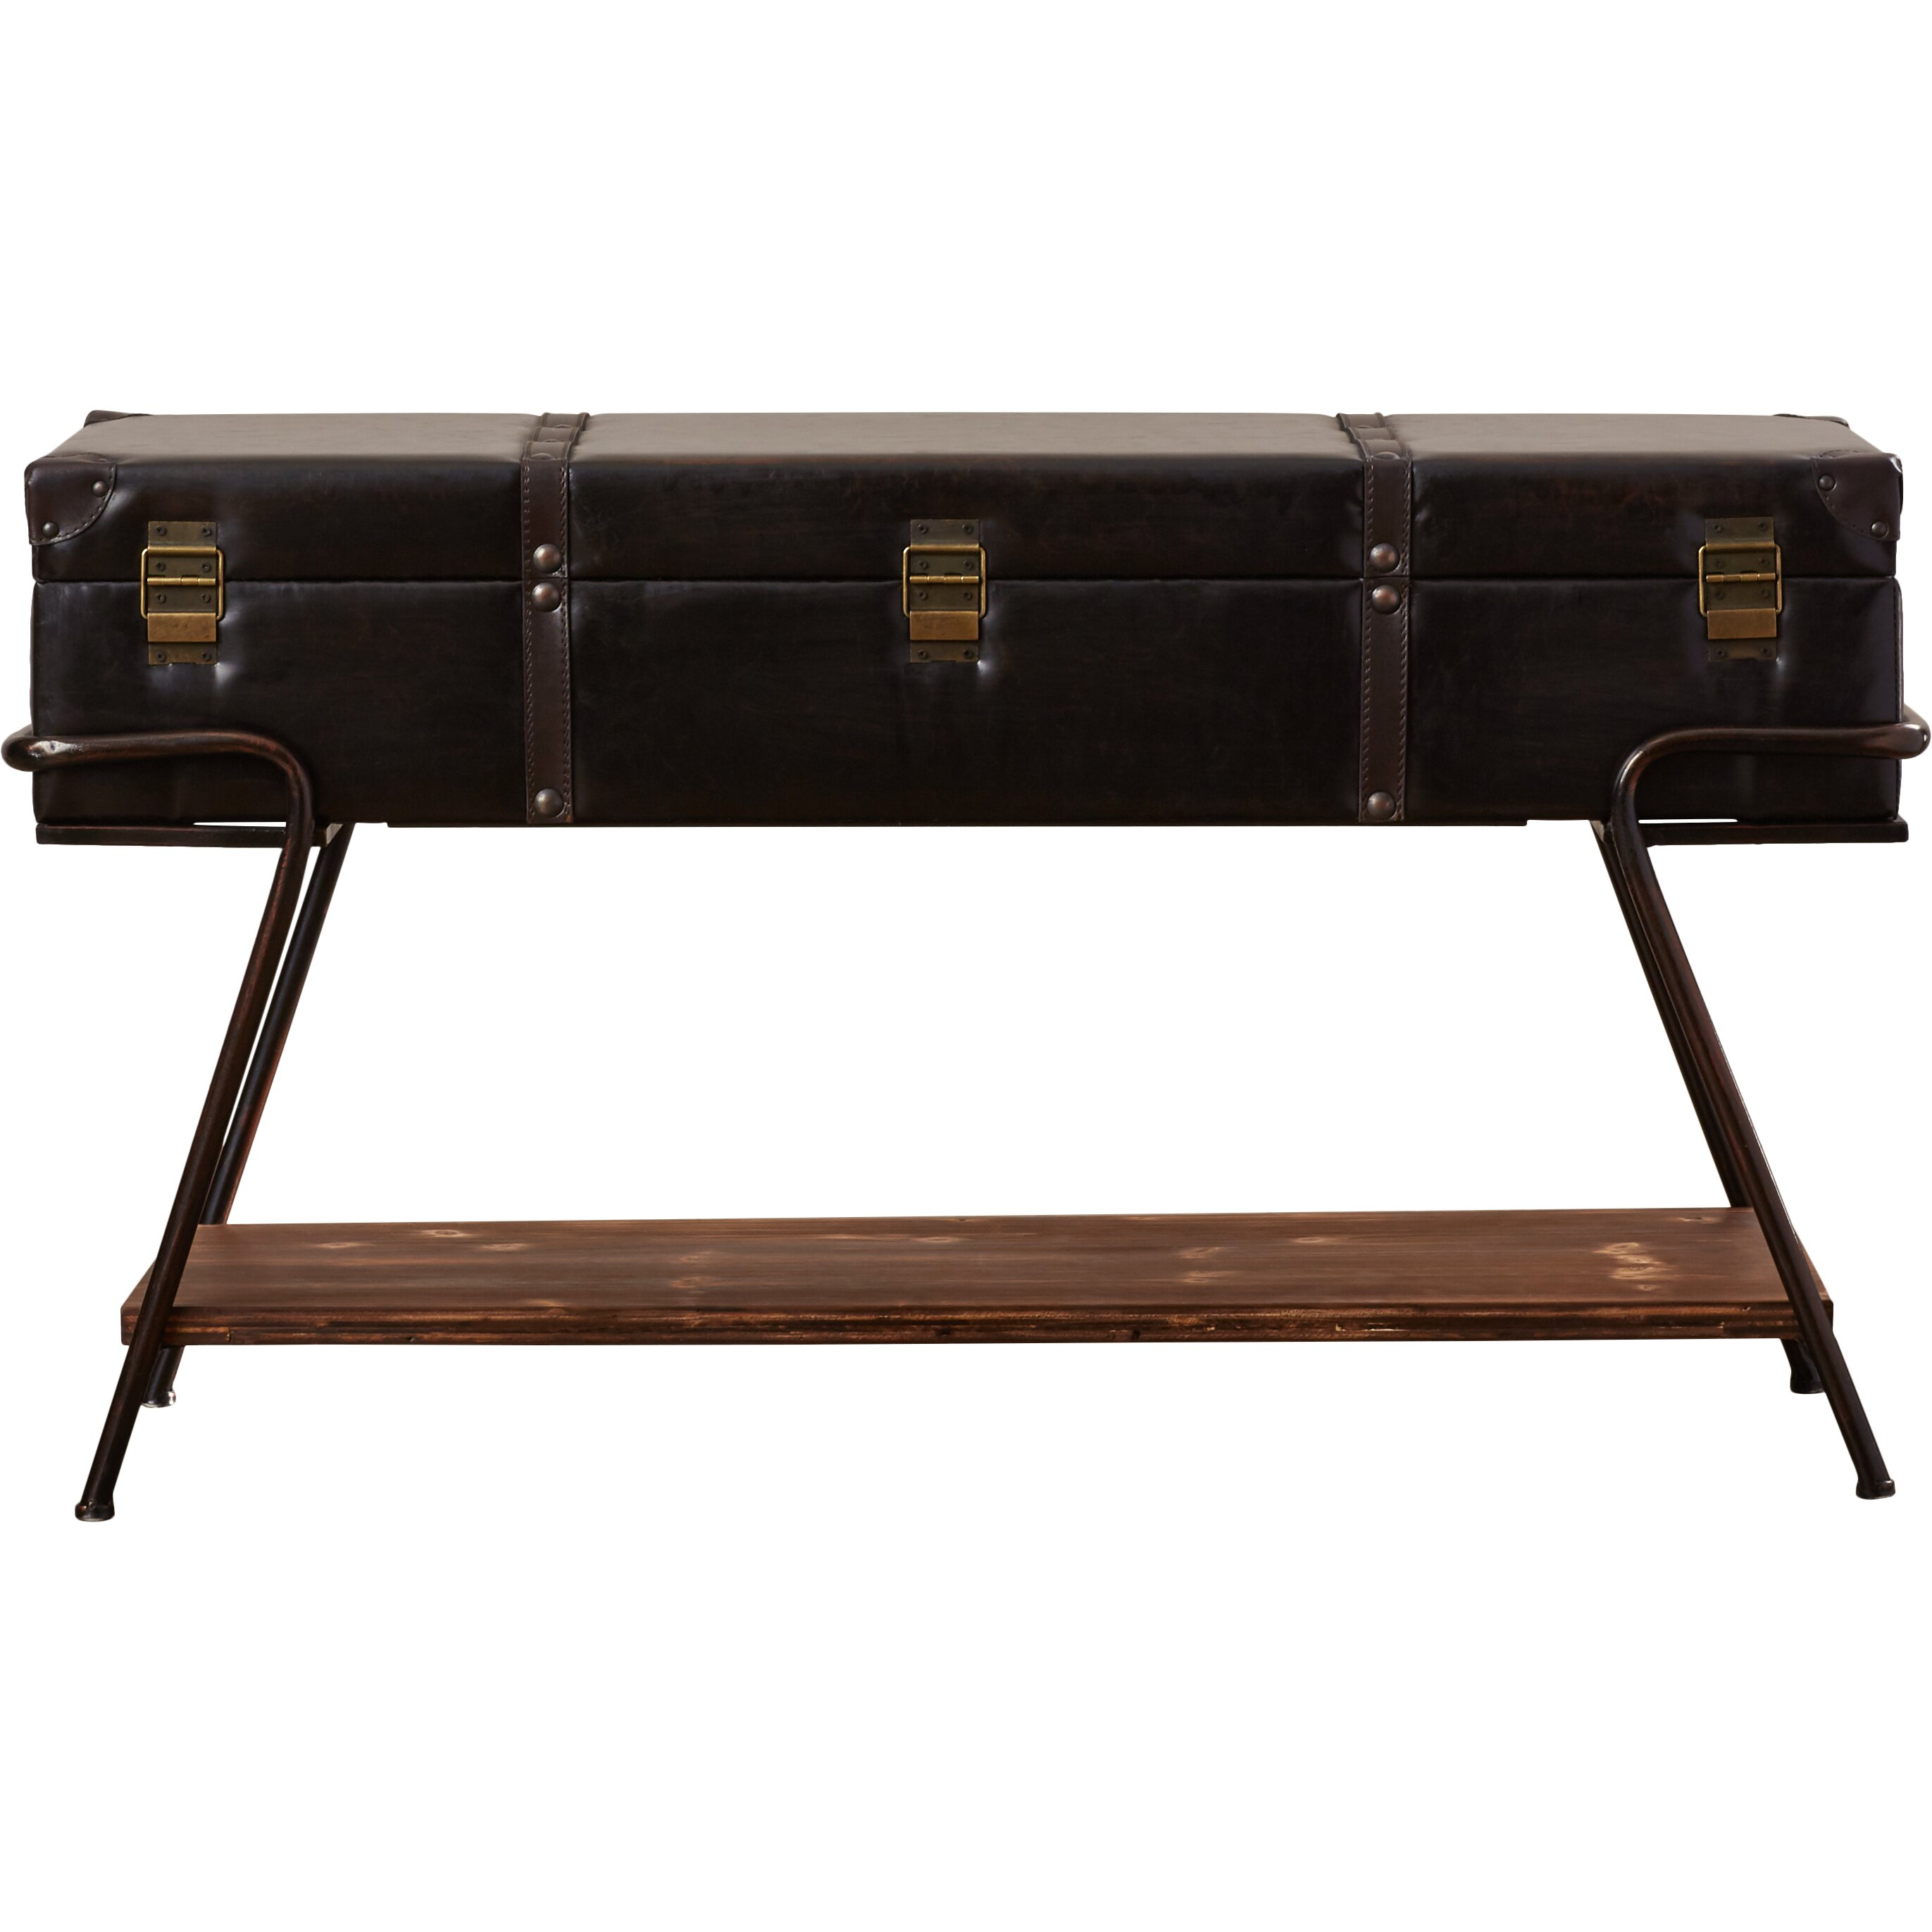 Trent Austin Design Coffee Table With Lift Top Reviews Wayfair